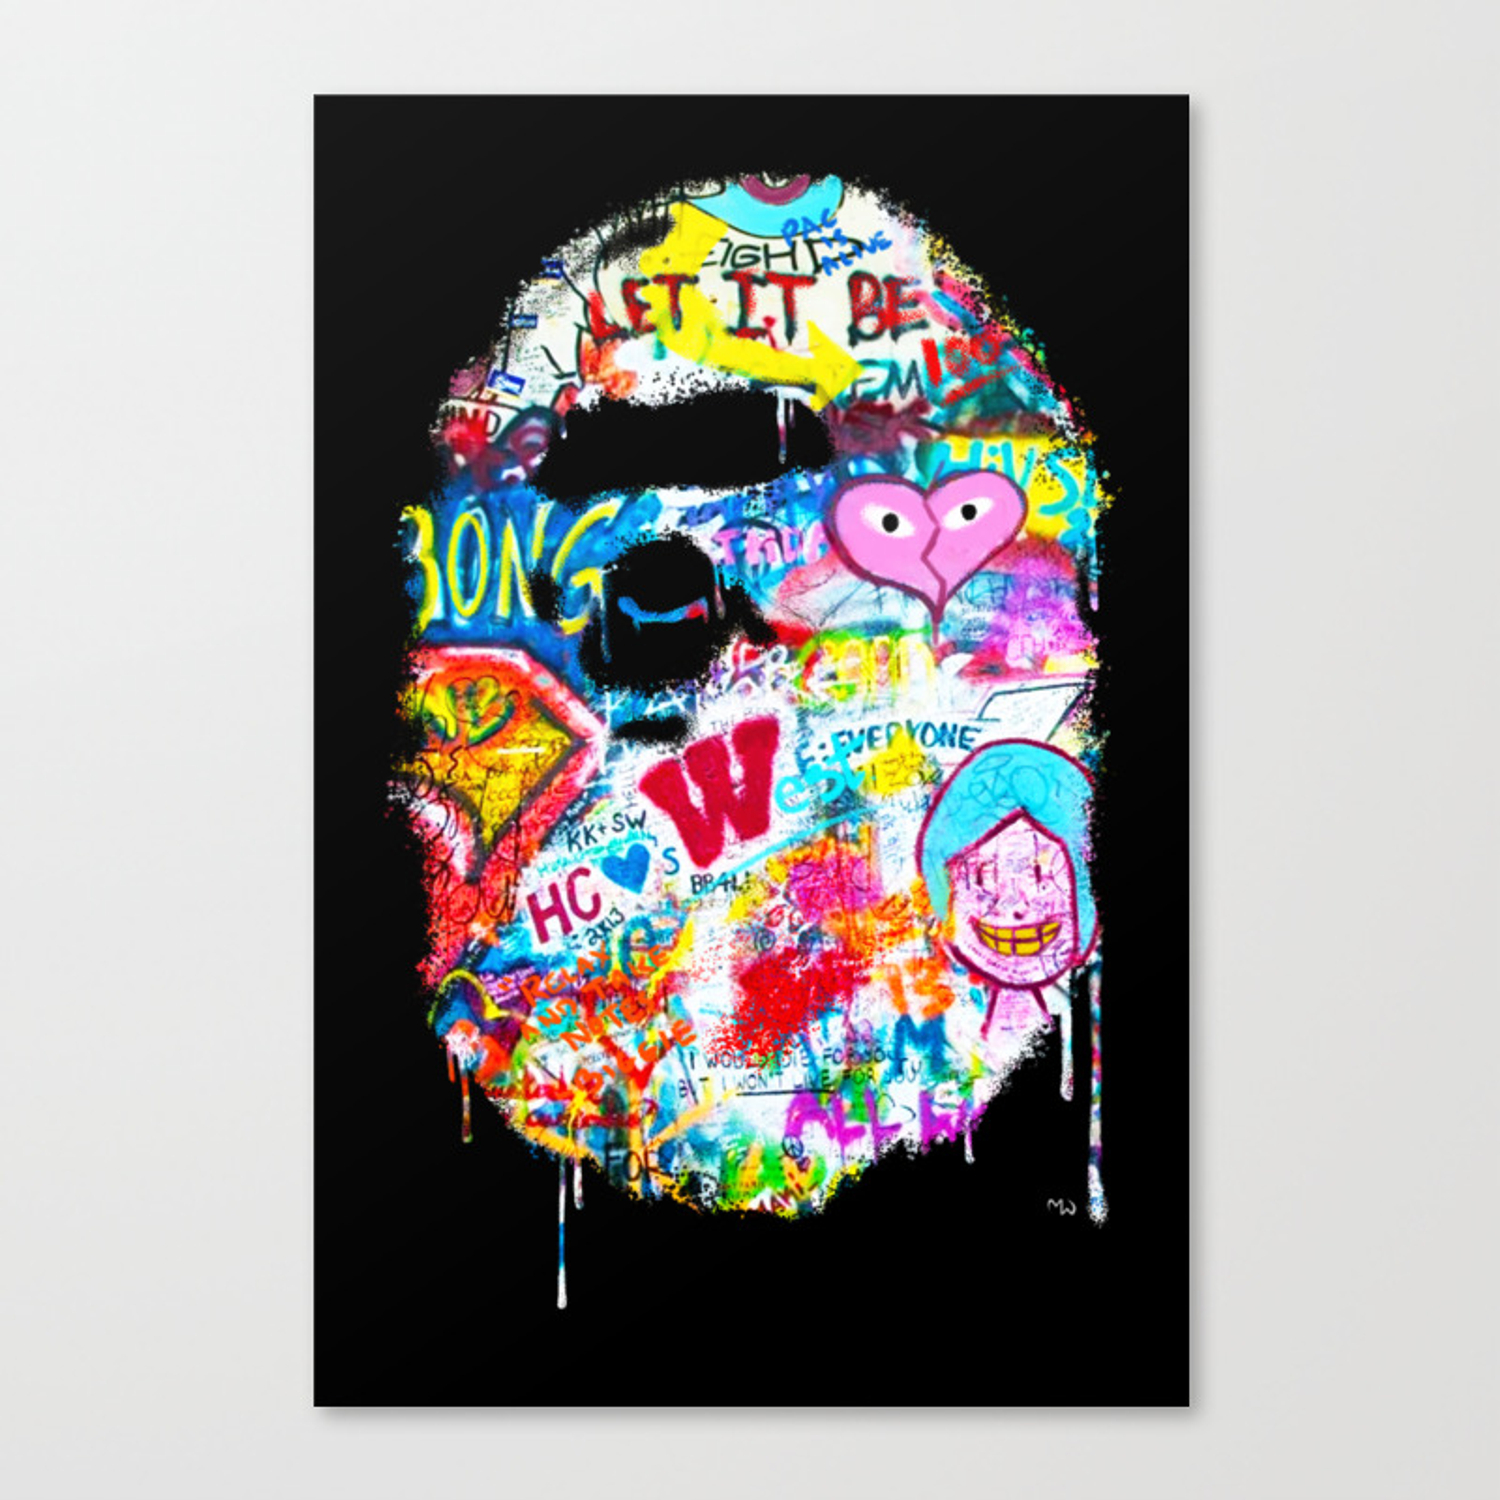 Graffiti hypebeast bape illustration canvas print